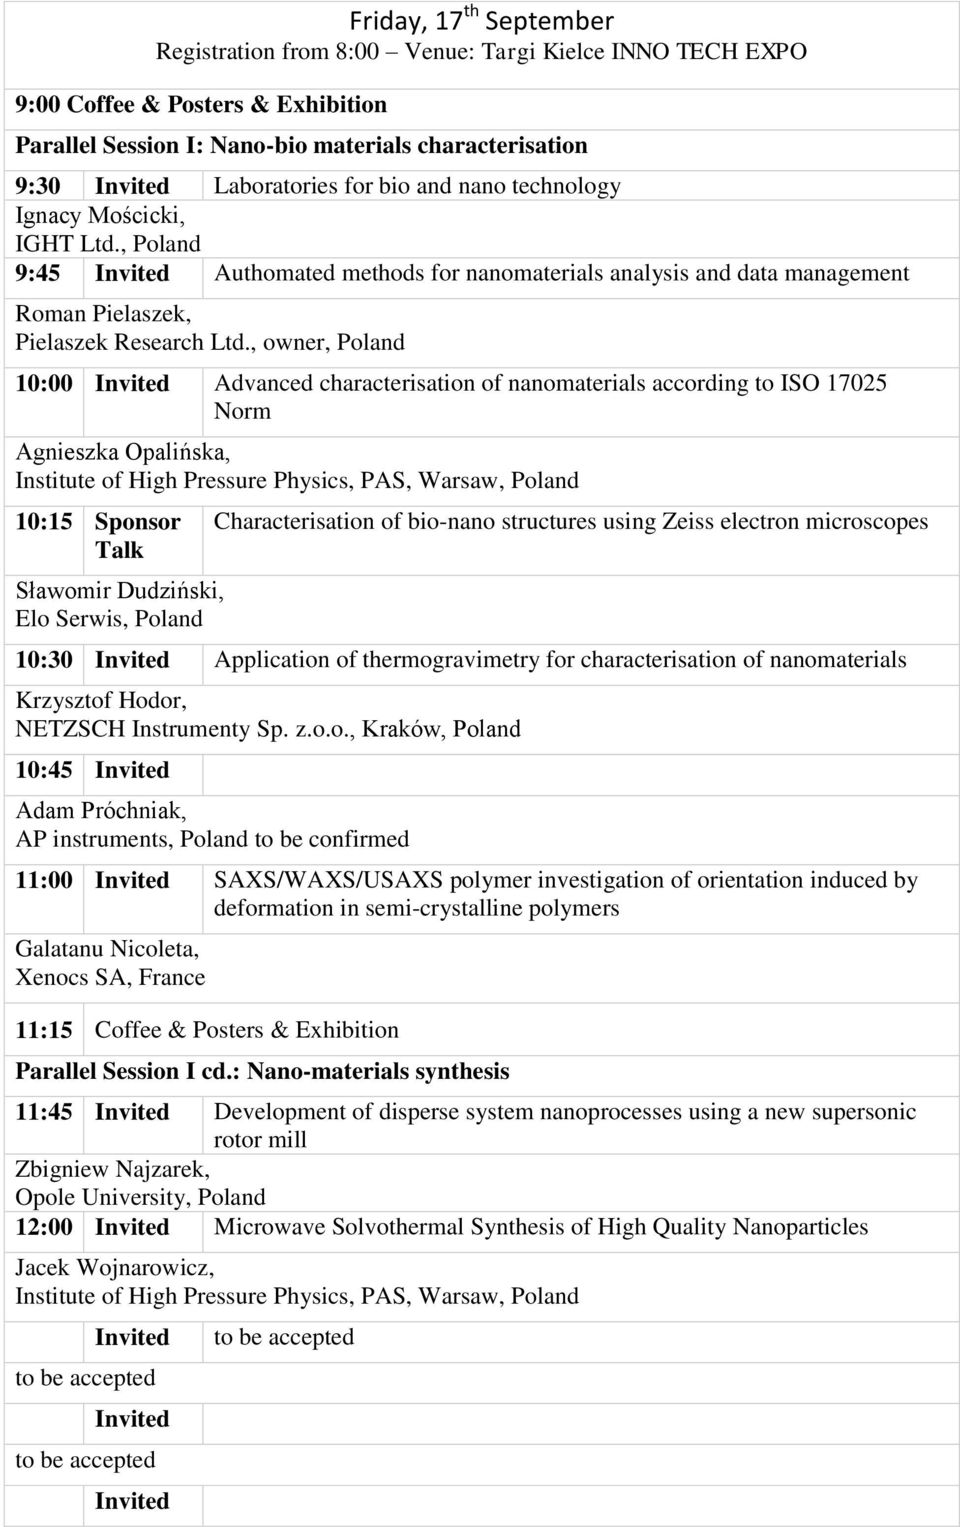 , owner, Poland 10:00 Advanced characterisation of nanomaterials according to ISO 17025 Norm Agnieszka Opalińska, Institute of High Pressure Physics, PAS, Warsaw, Poland 10:15 Sponsor Talk Sławomir